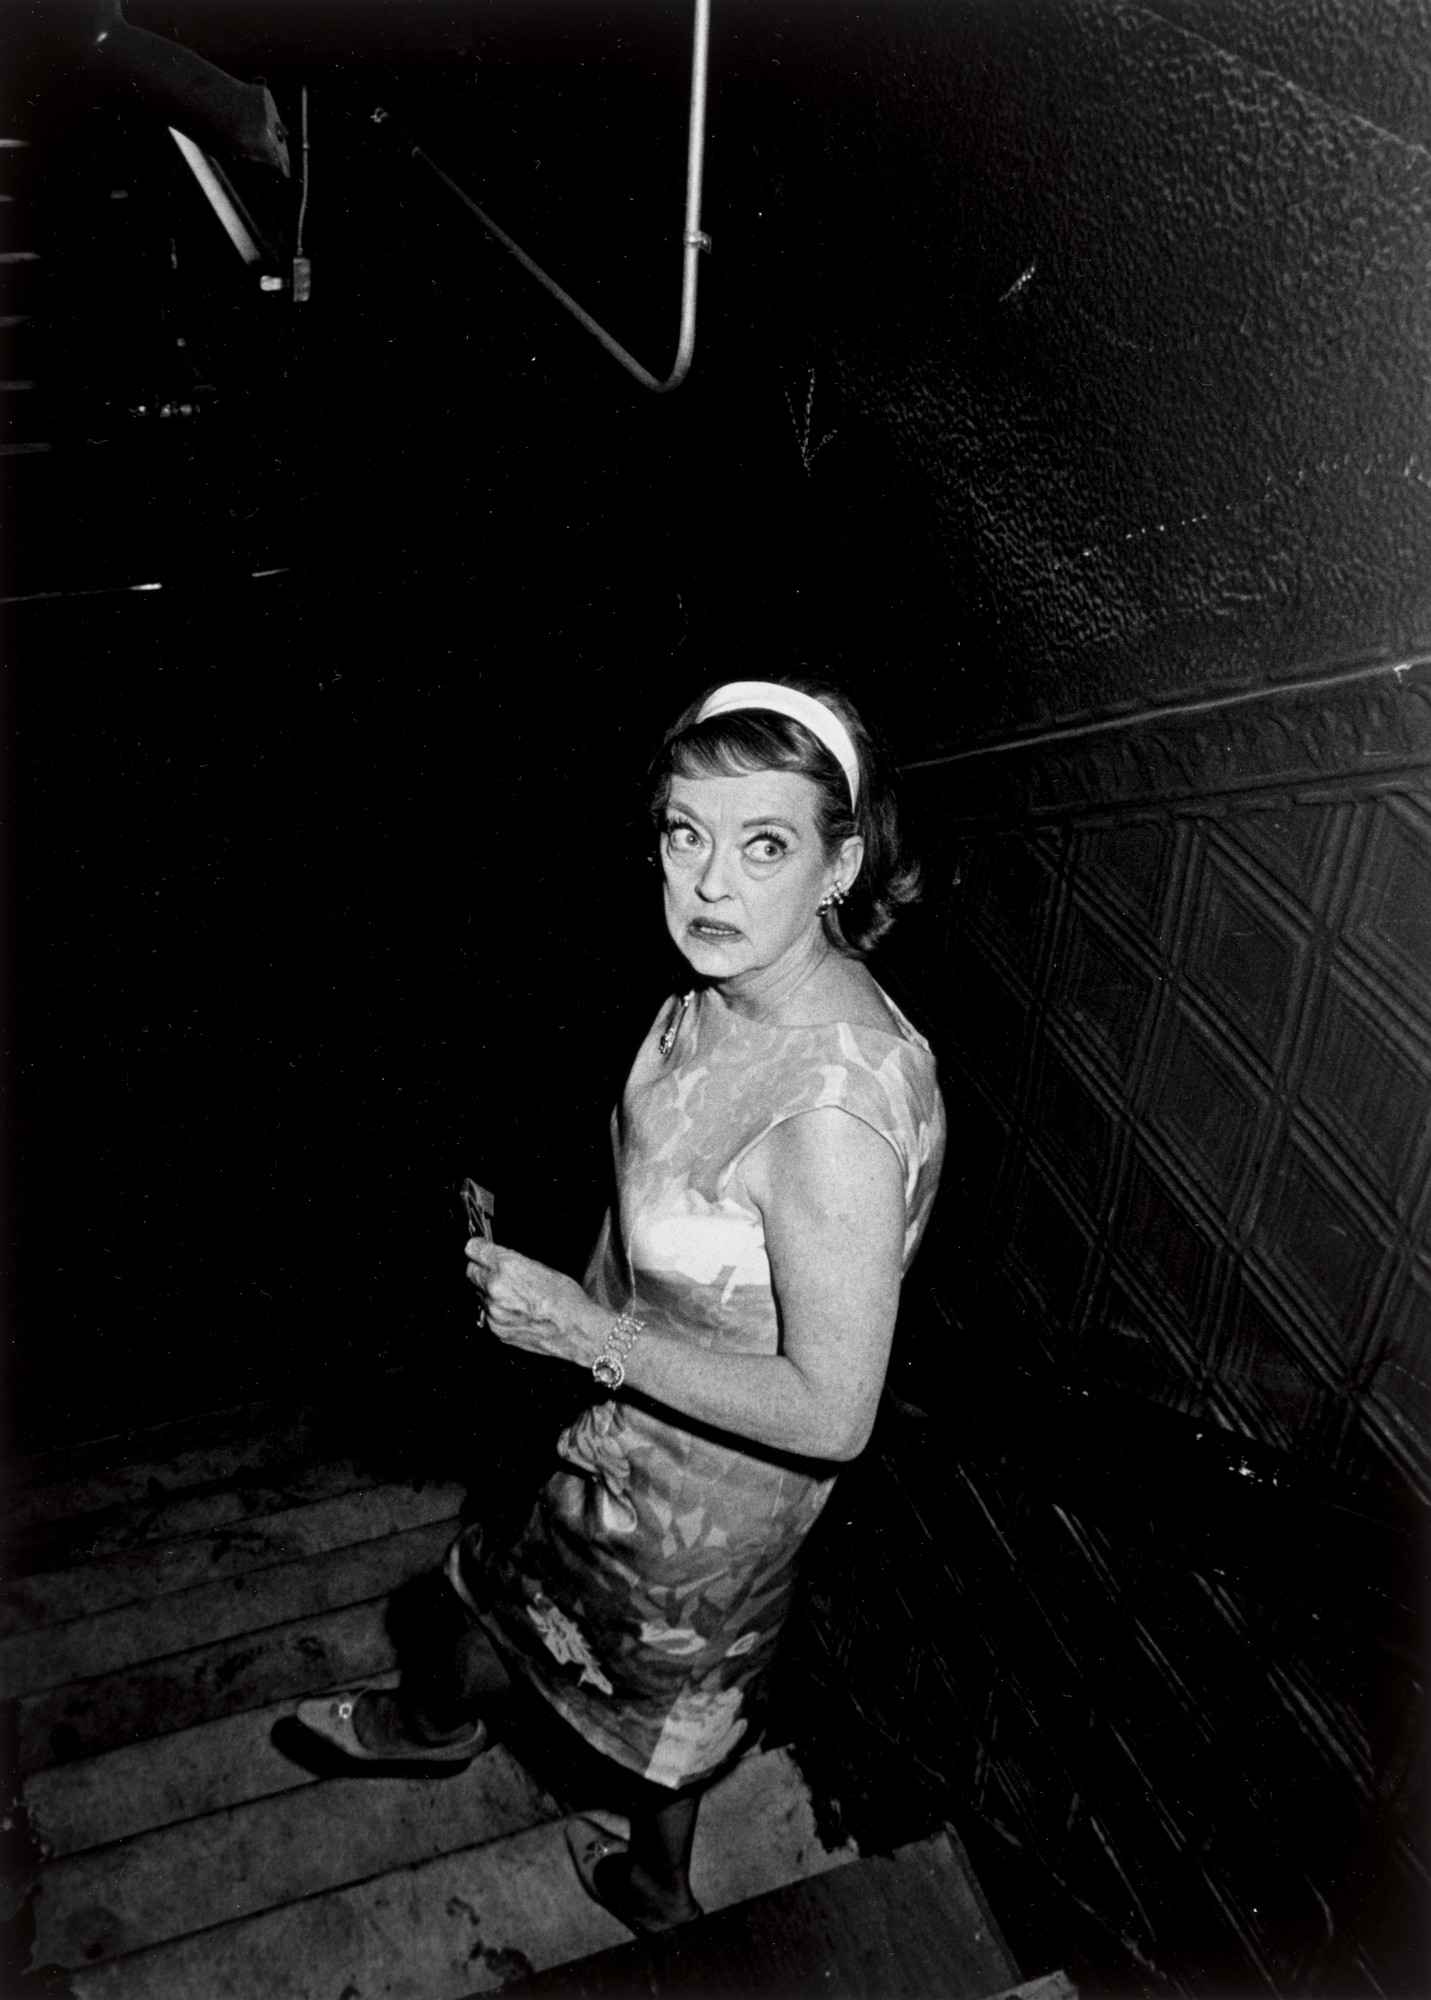 Ron Galella. Bette Davis Backstage at the Cheetah Costume Ball at the Electric Circus, New York. May 16, 1968